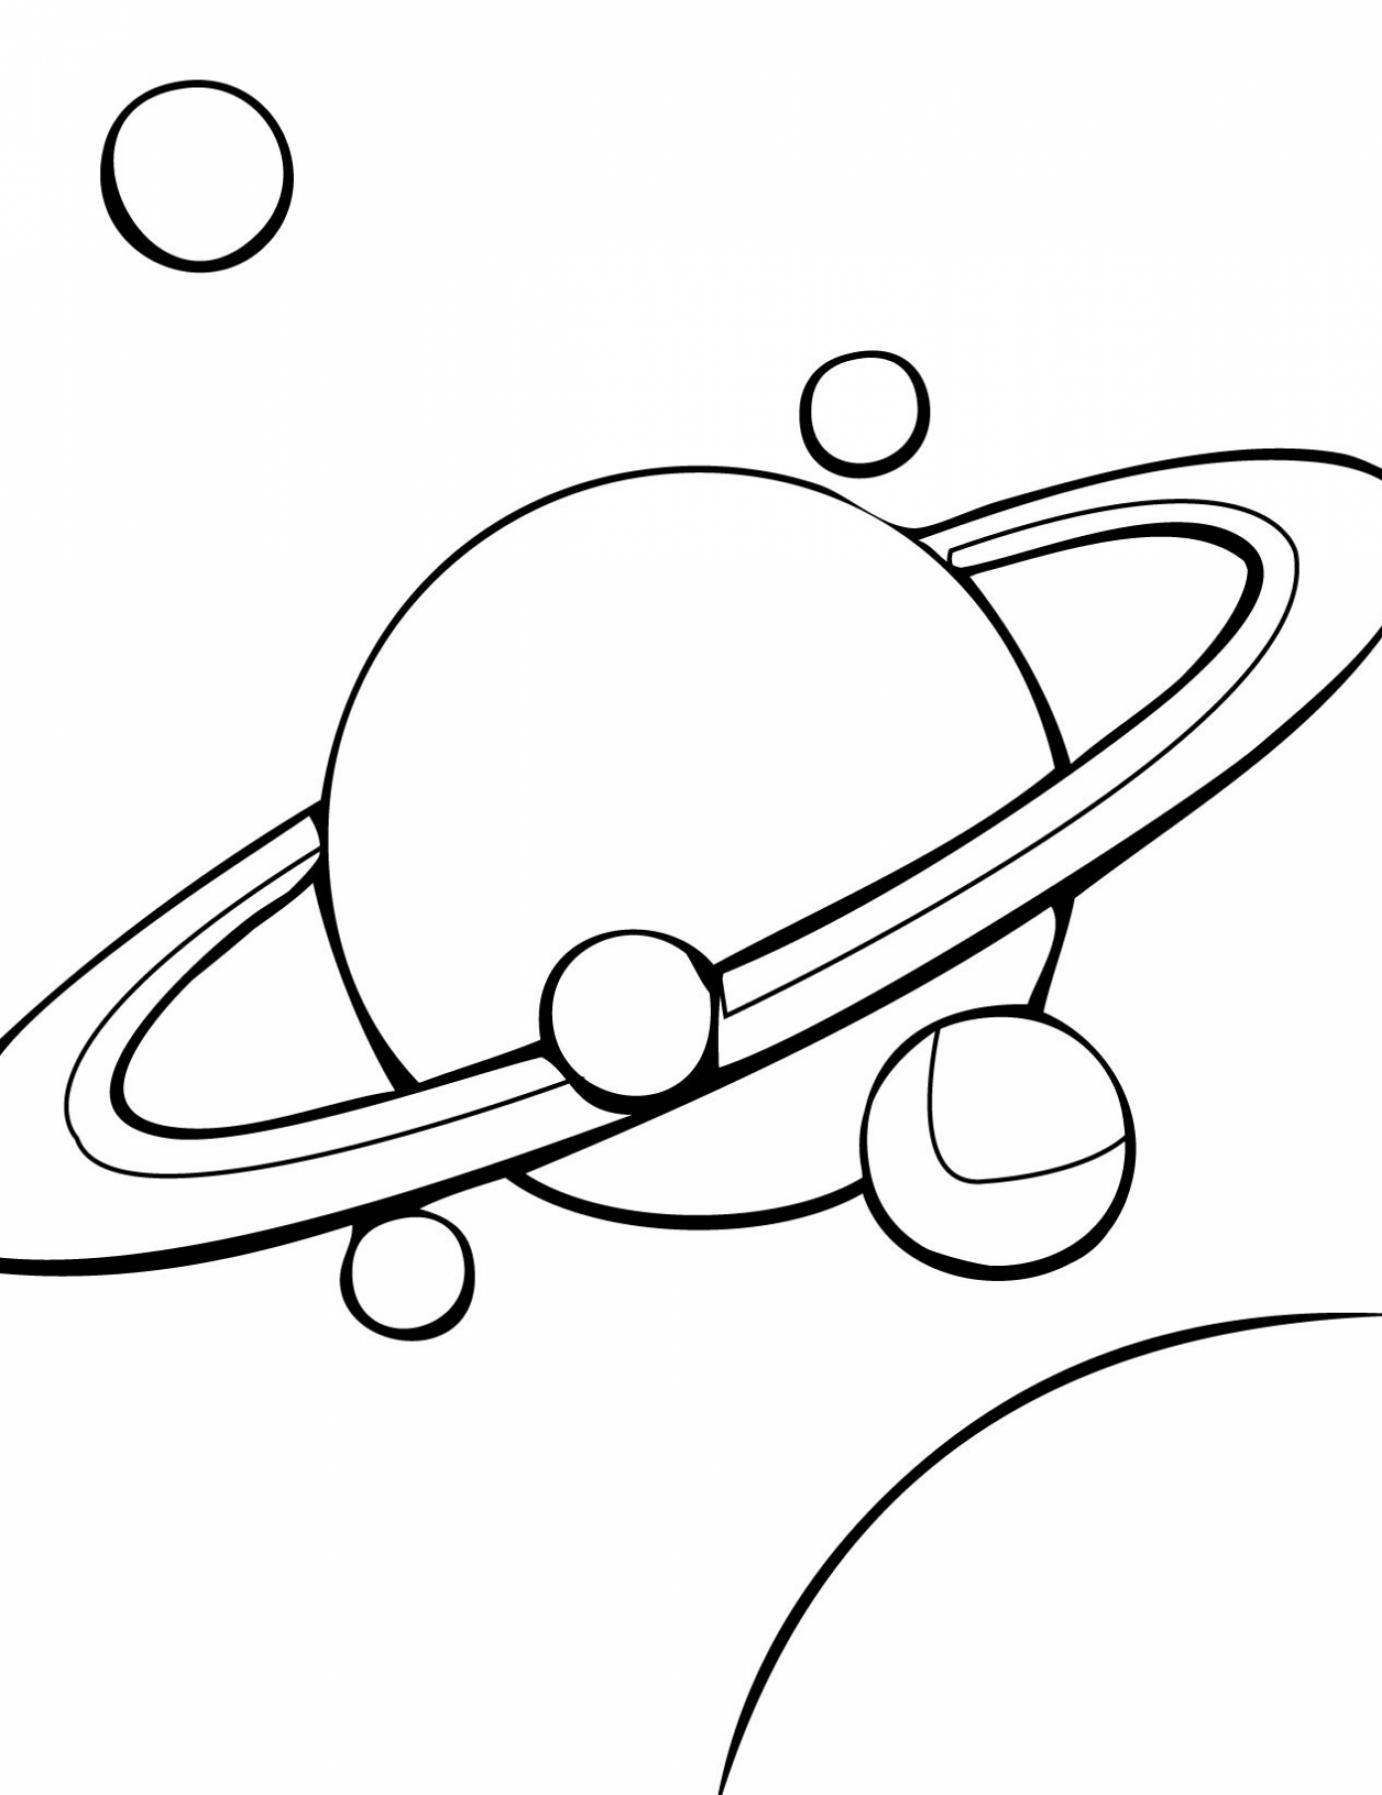 1382x1795 Free Printable Solar System Coloring Pages For Kids